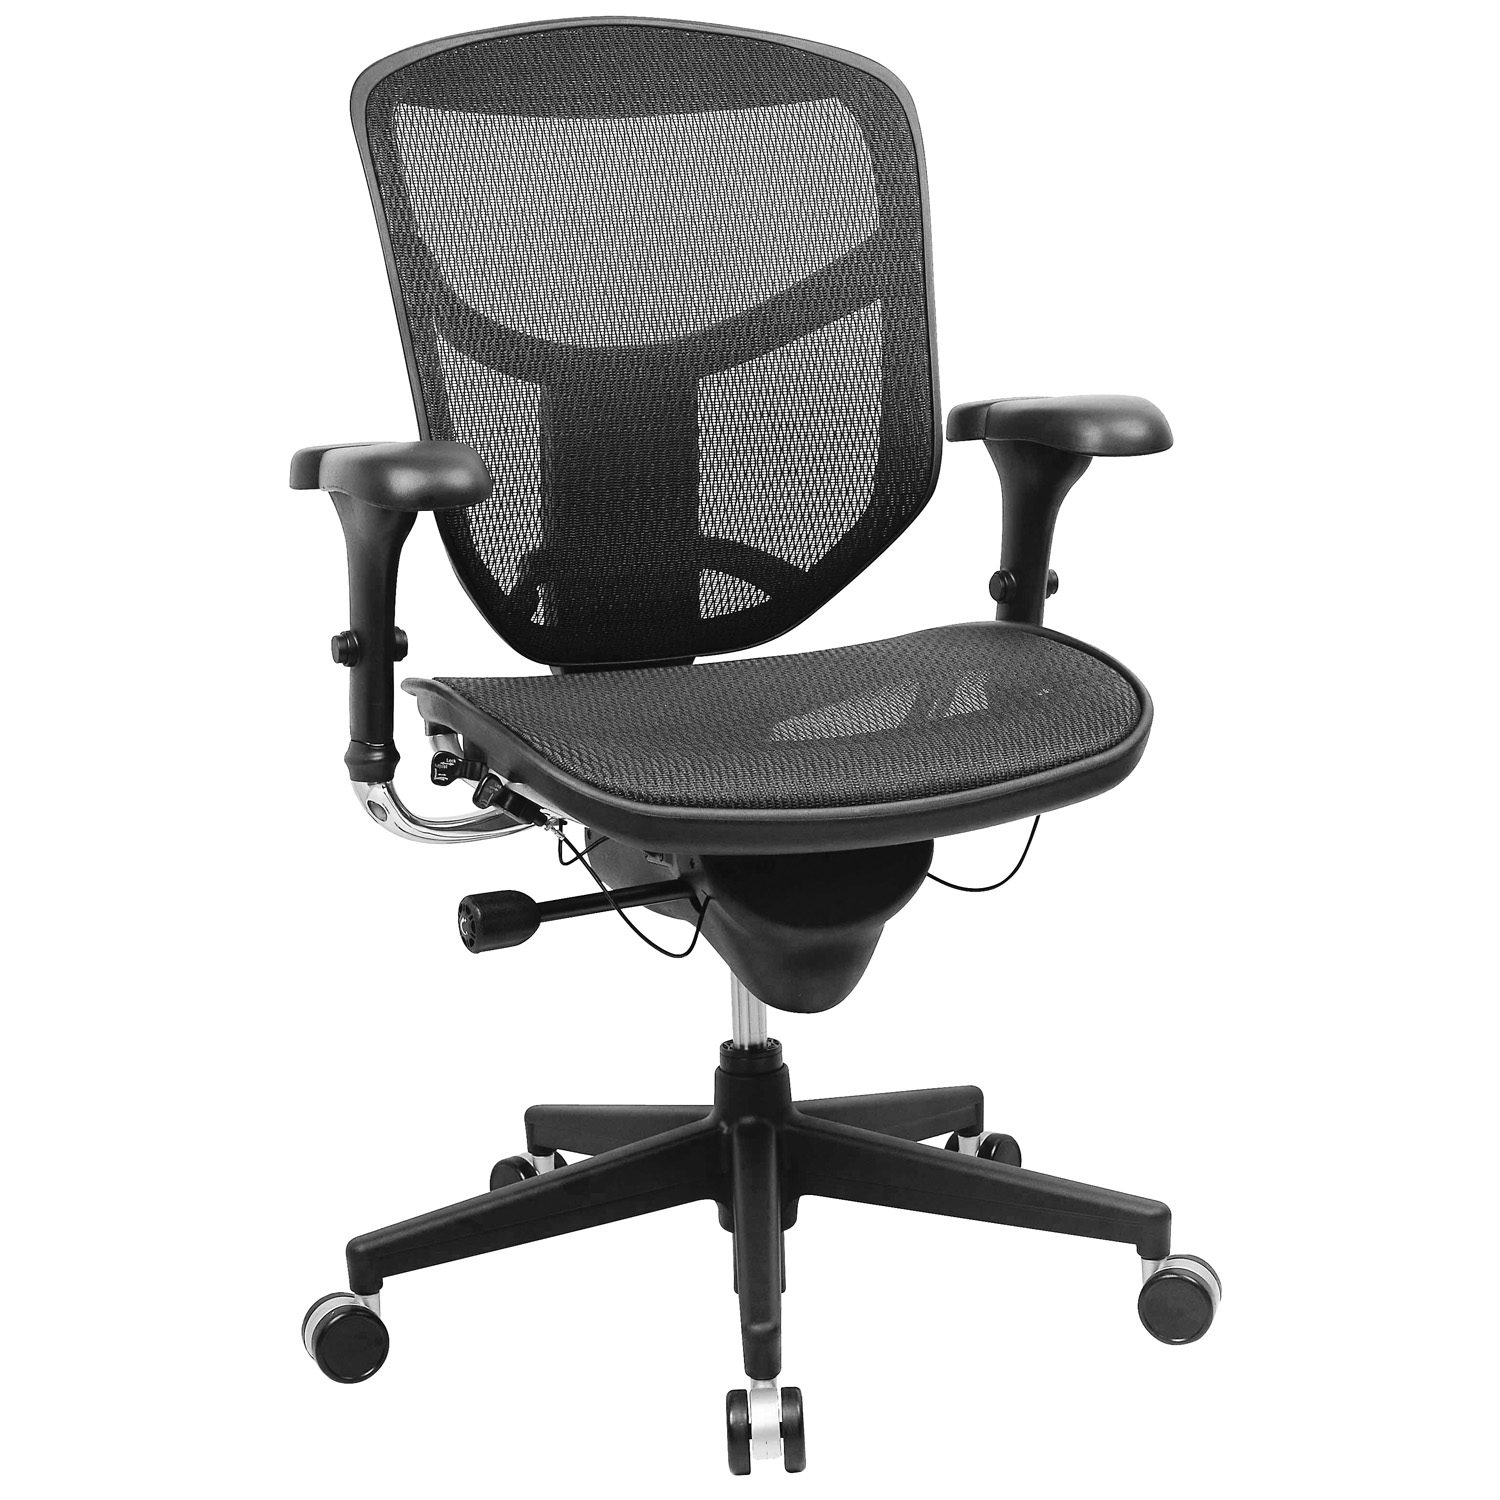 Workpro Chair Workpro Pro Quantum 9000 Series Ergonomic Mesh Mid Back